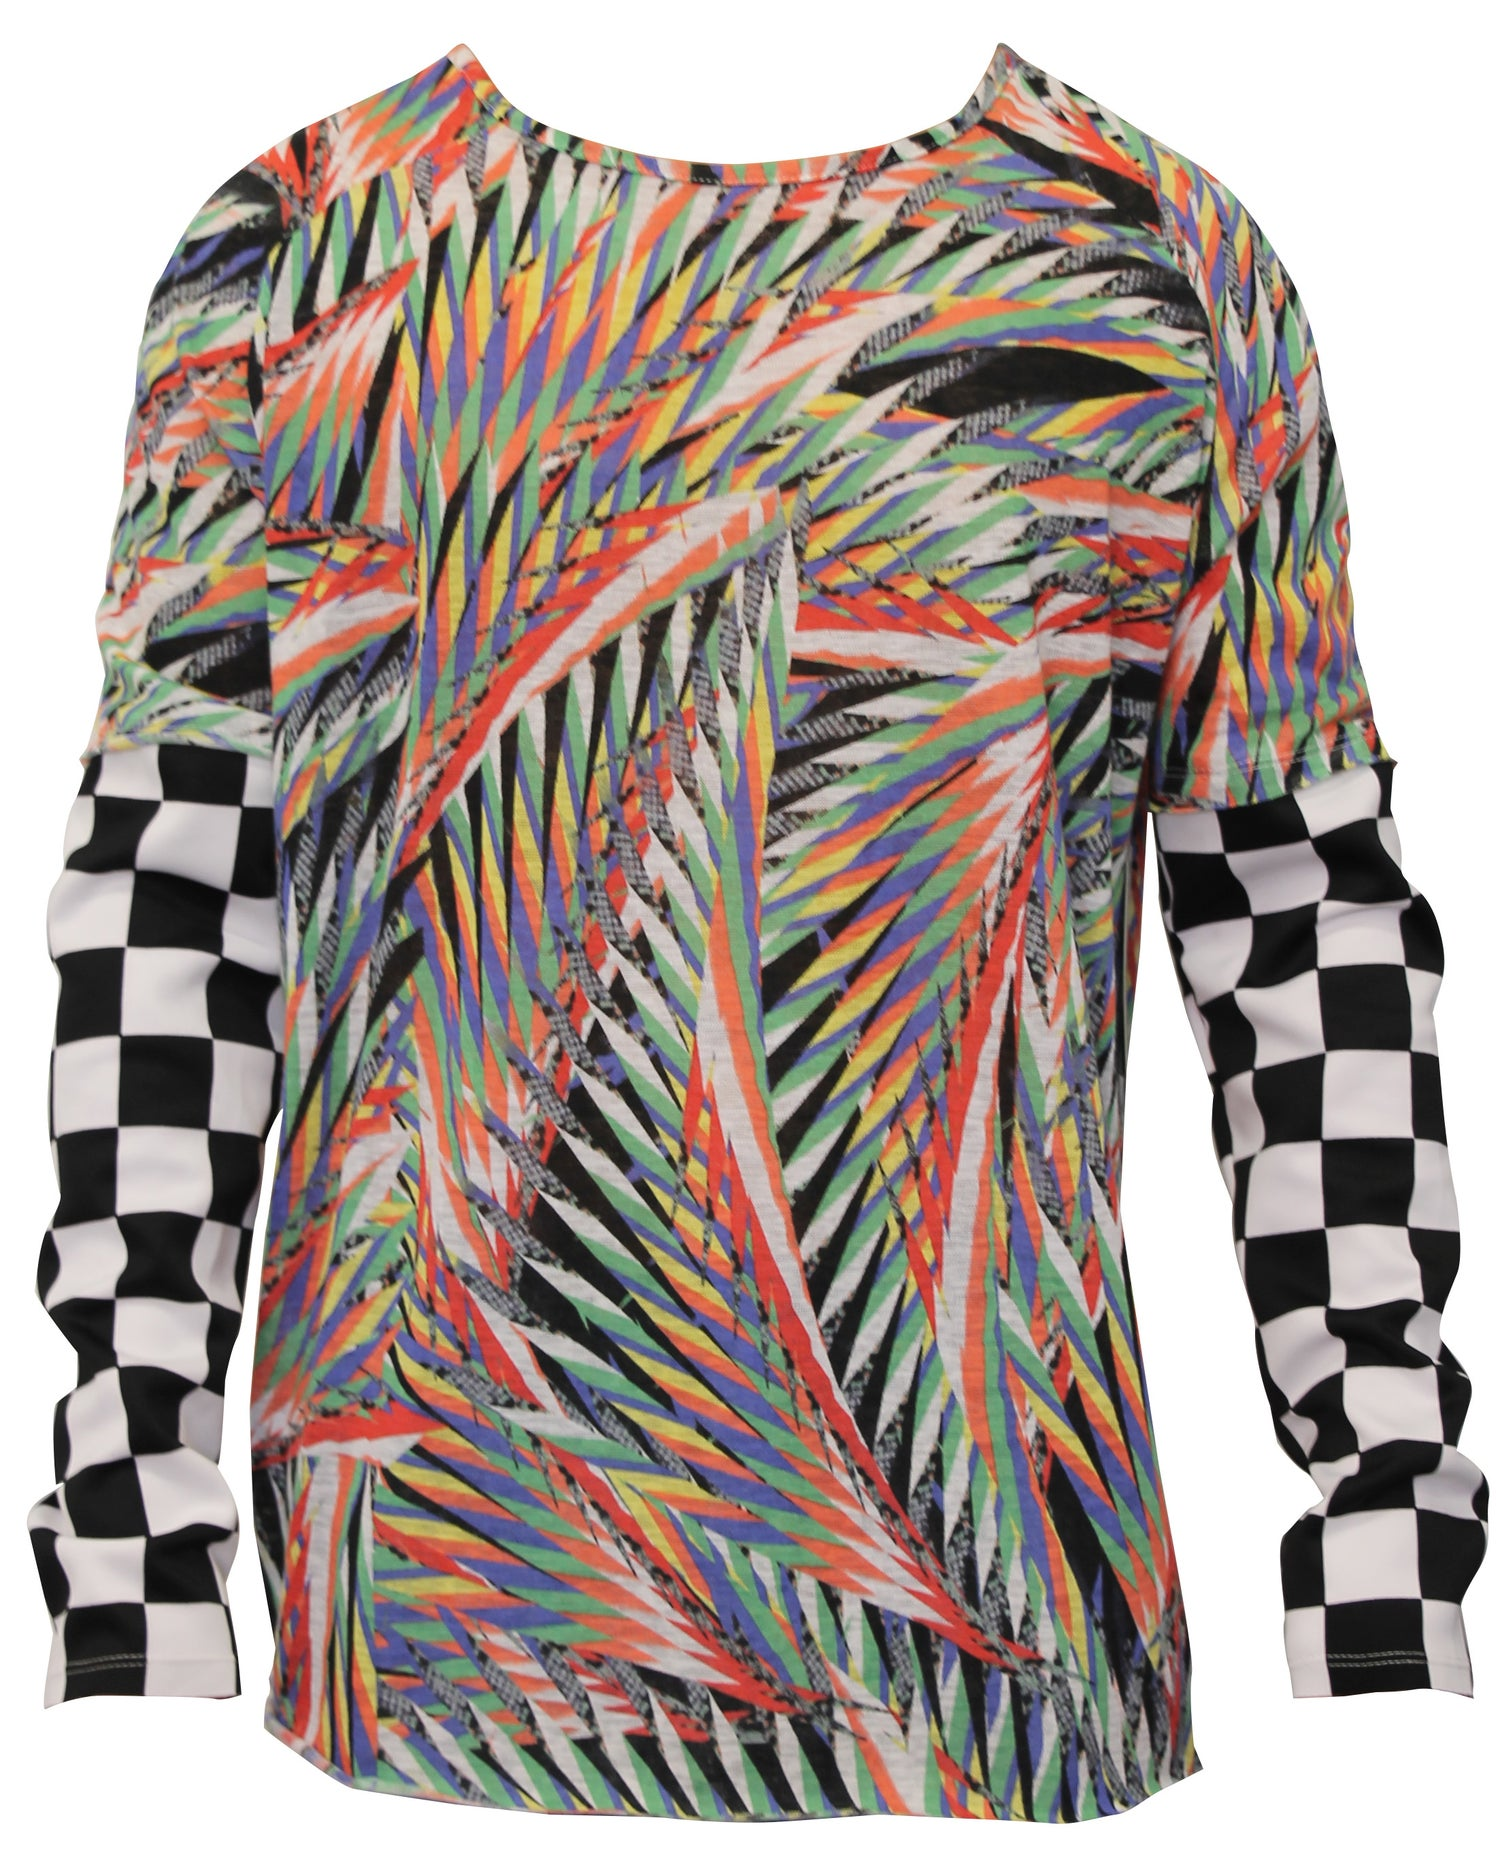 Image of Printed Slub Long Sleeve Shirt